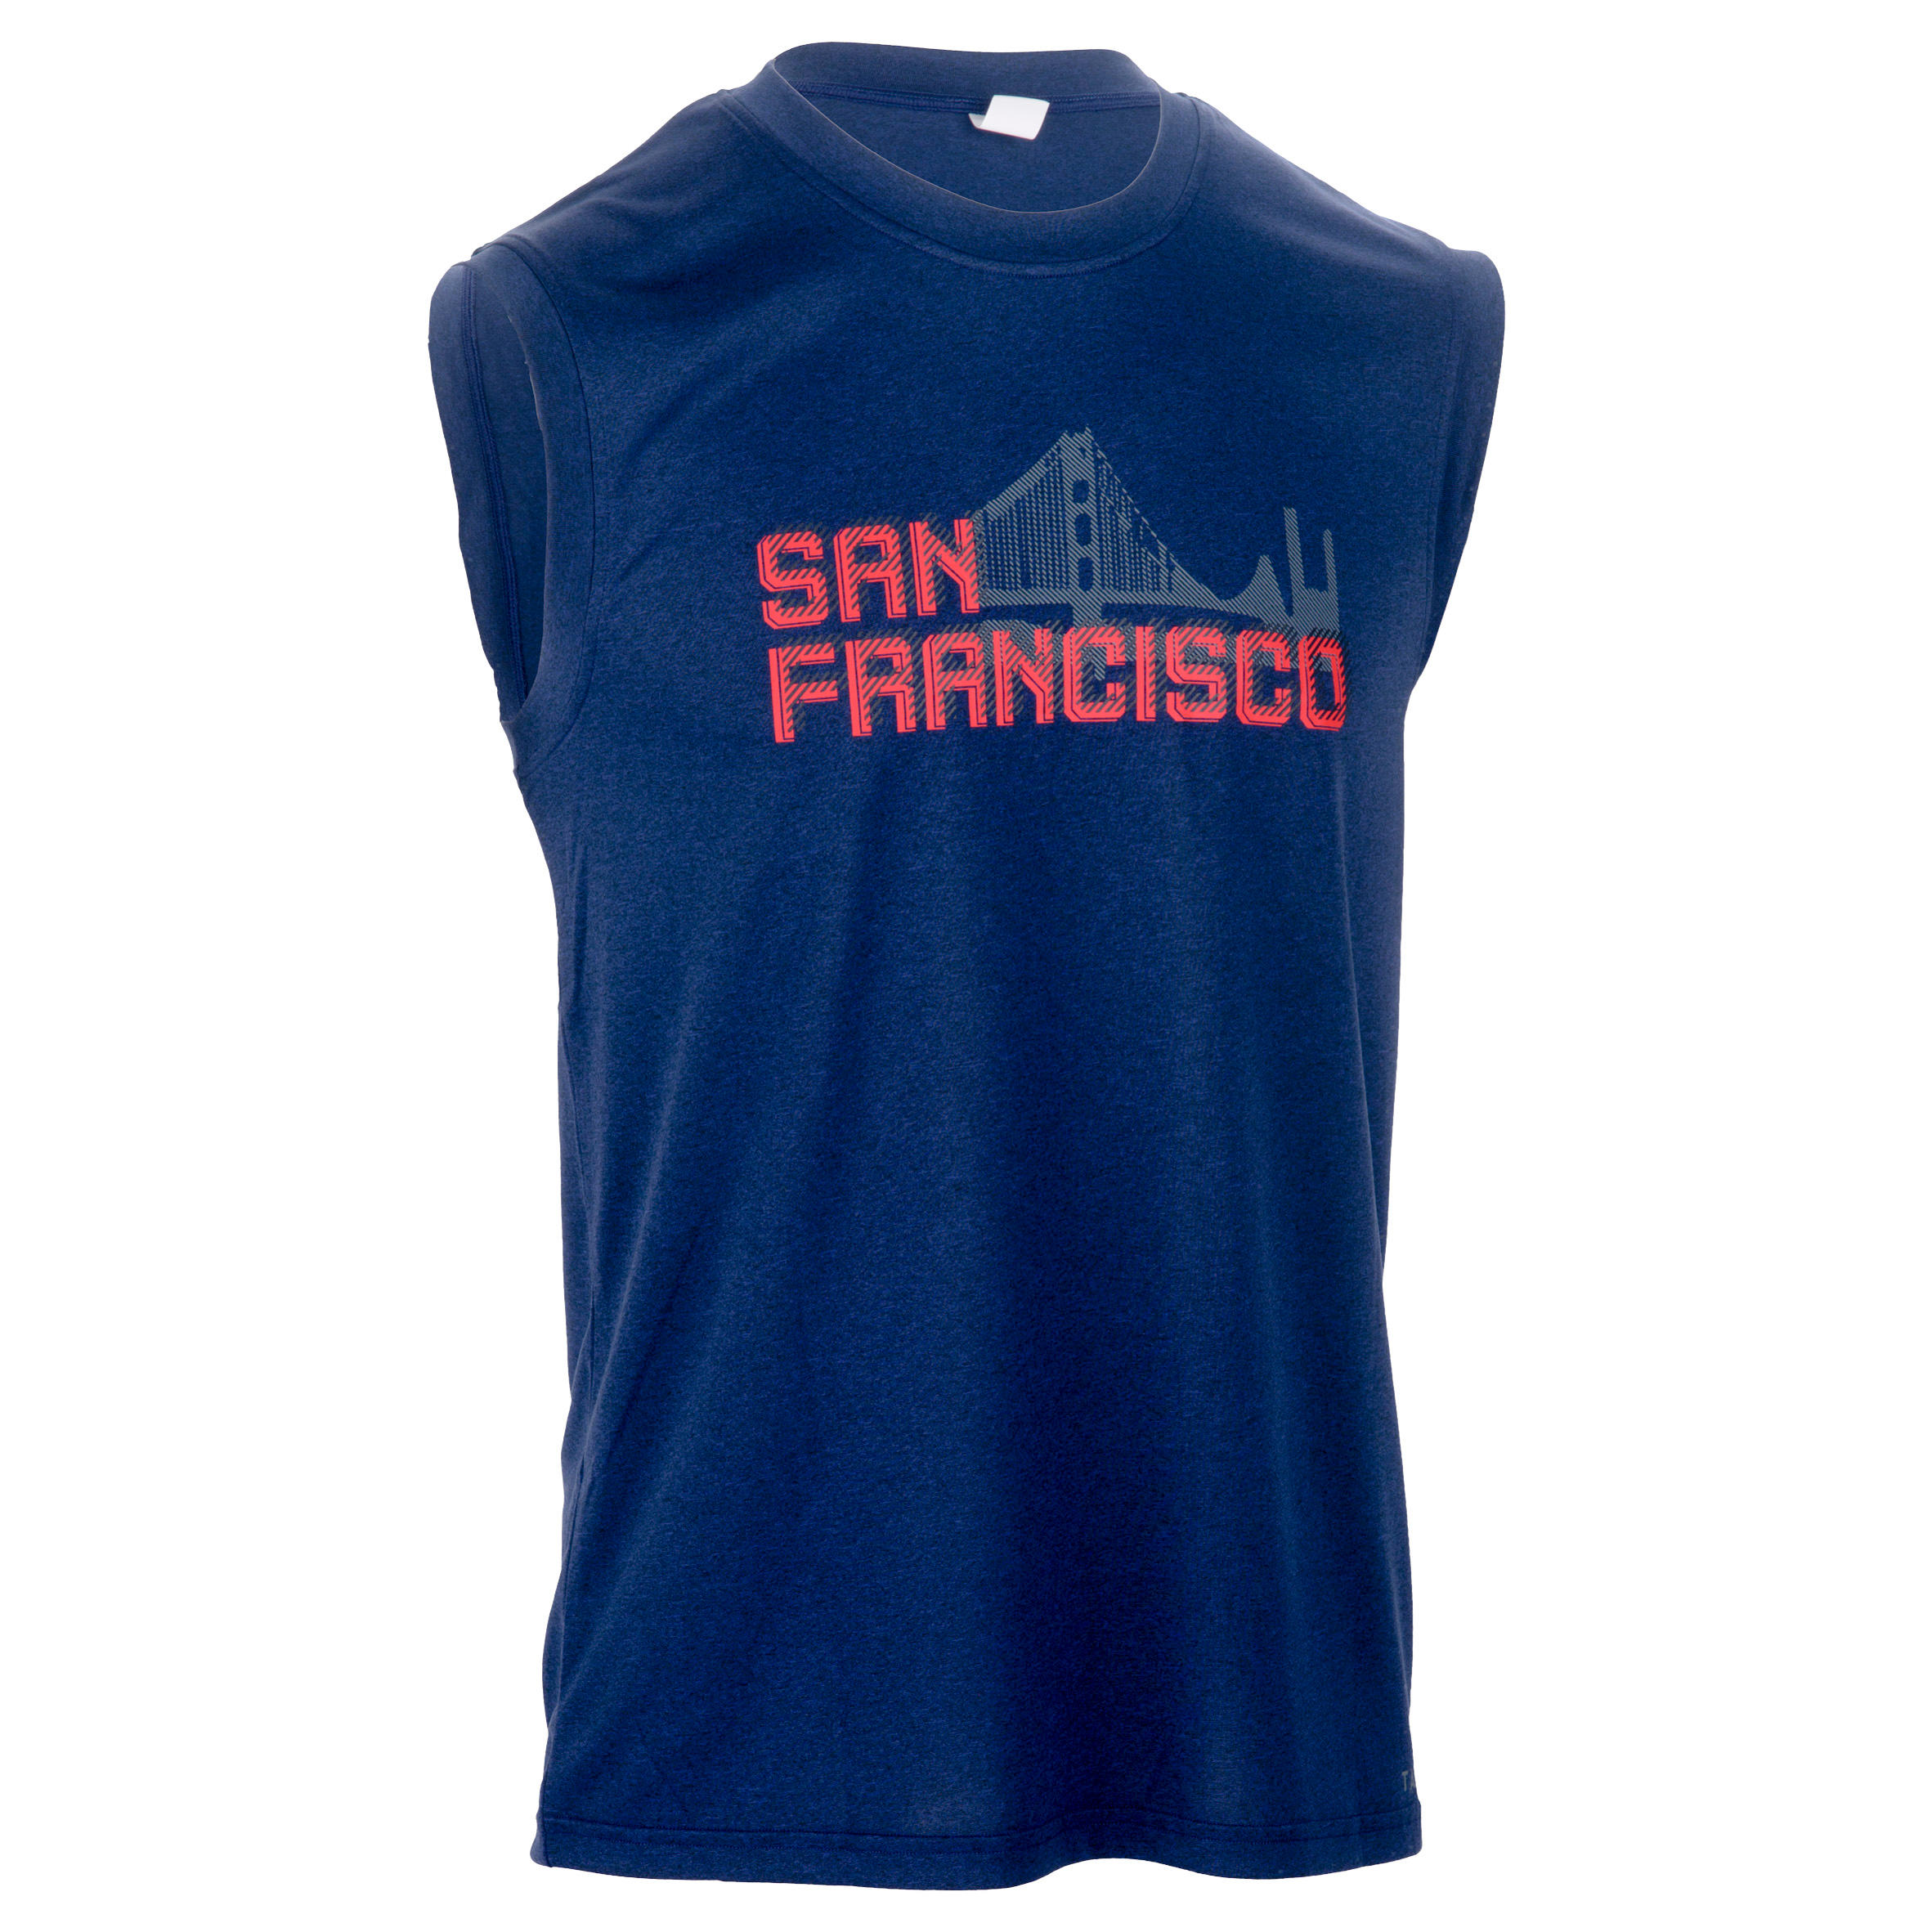 Fast San Francisco Beginner/Experienced Basketball Tank Top Navy/red